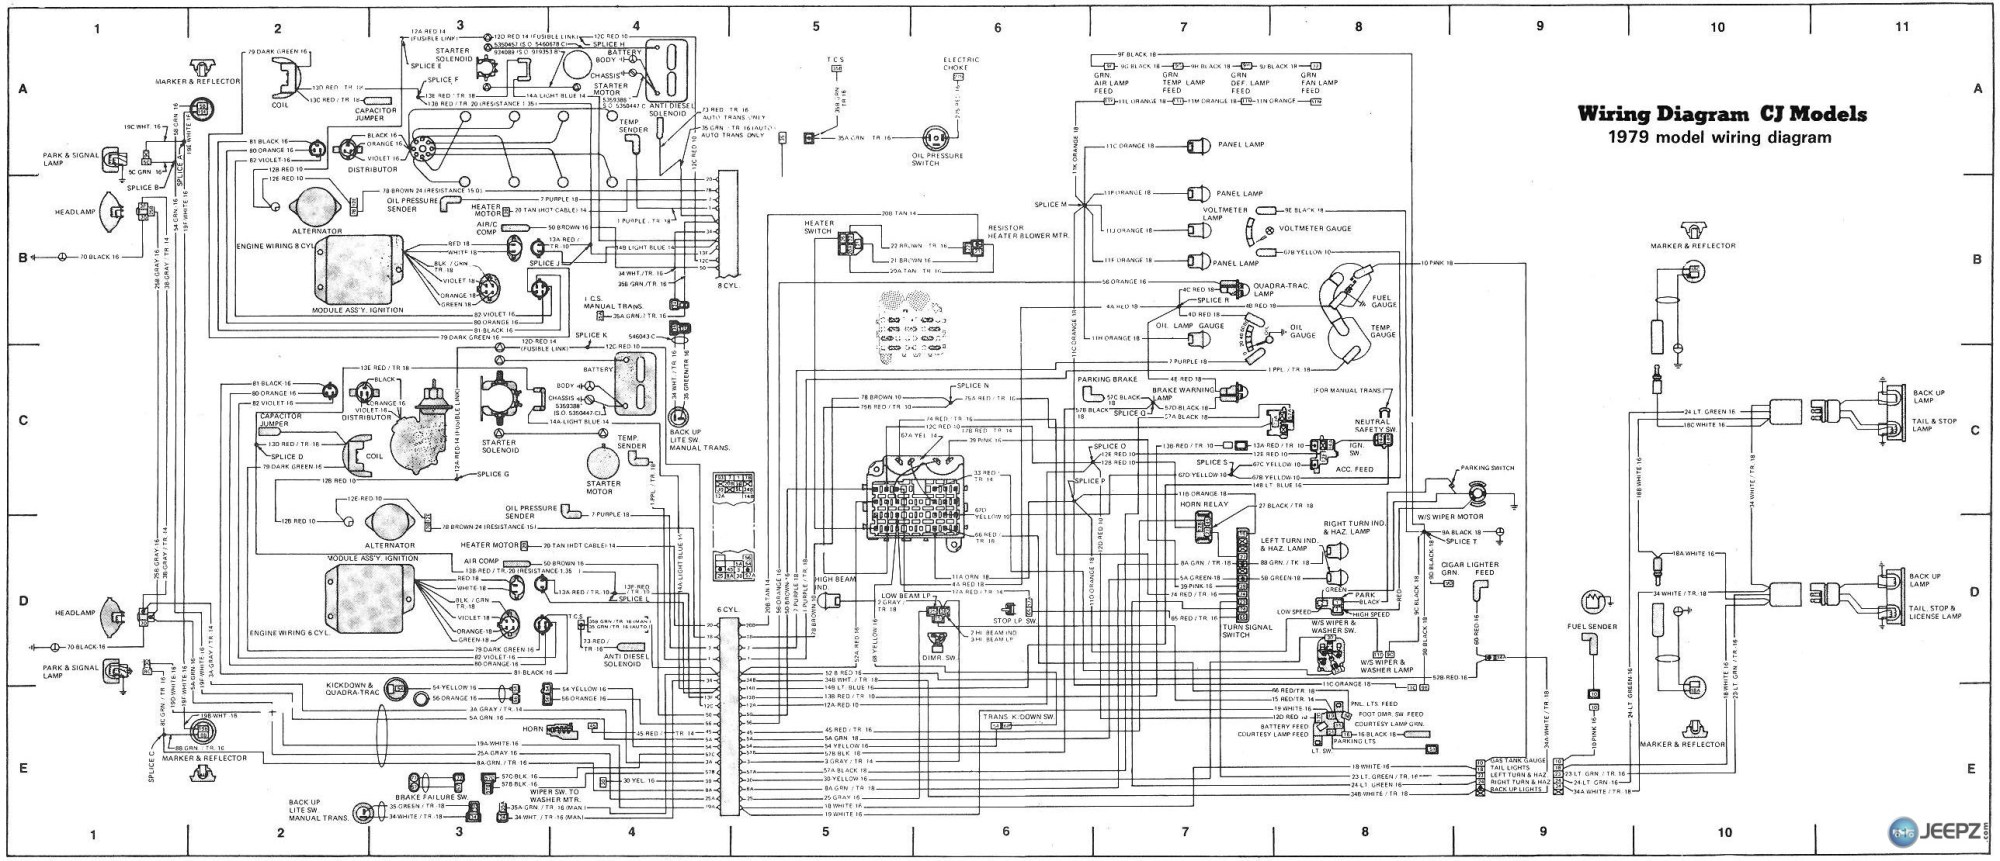 hight resolution of 1984 jeep cj7 wiring diagram wiring diagrams my 1984 jeep cj7 tail light wiring diagram 1984 jeep wiring diagram